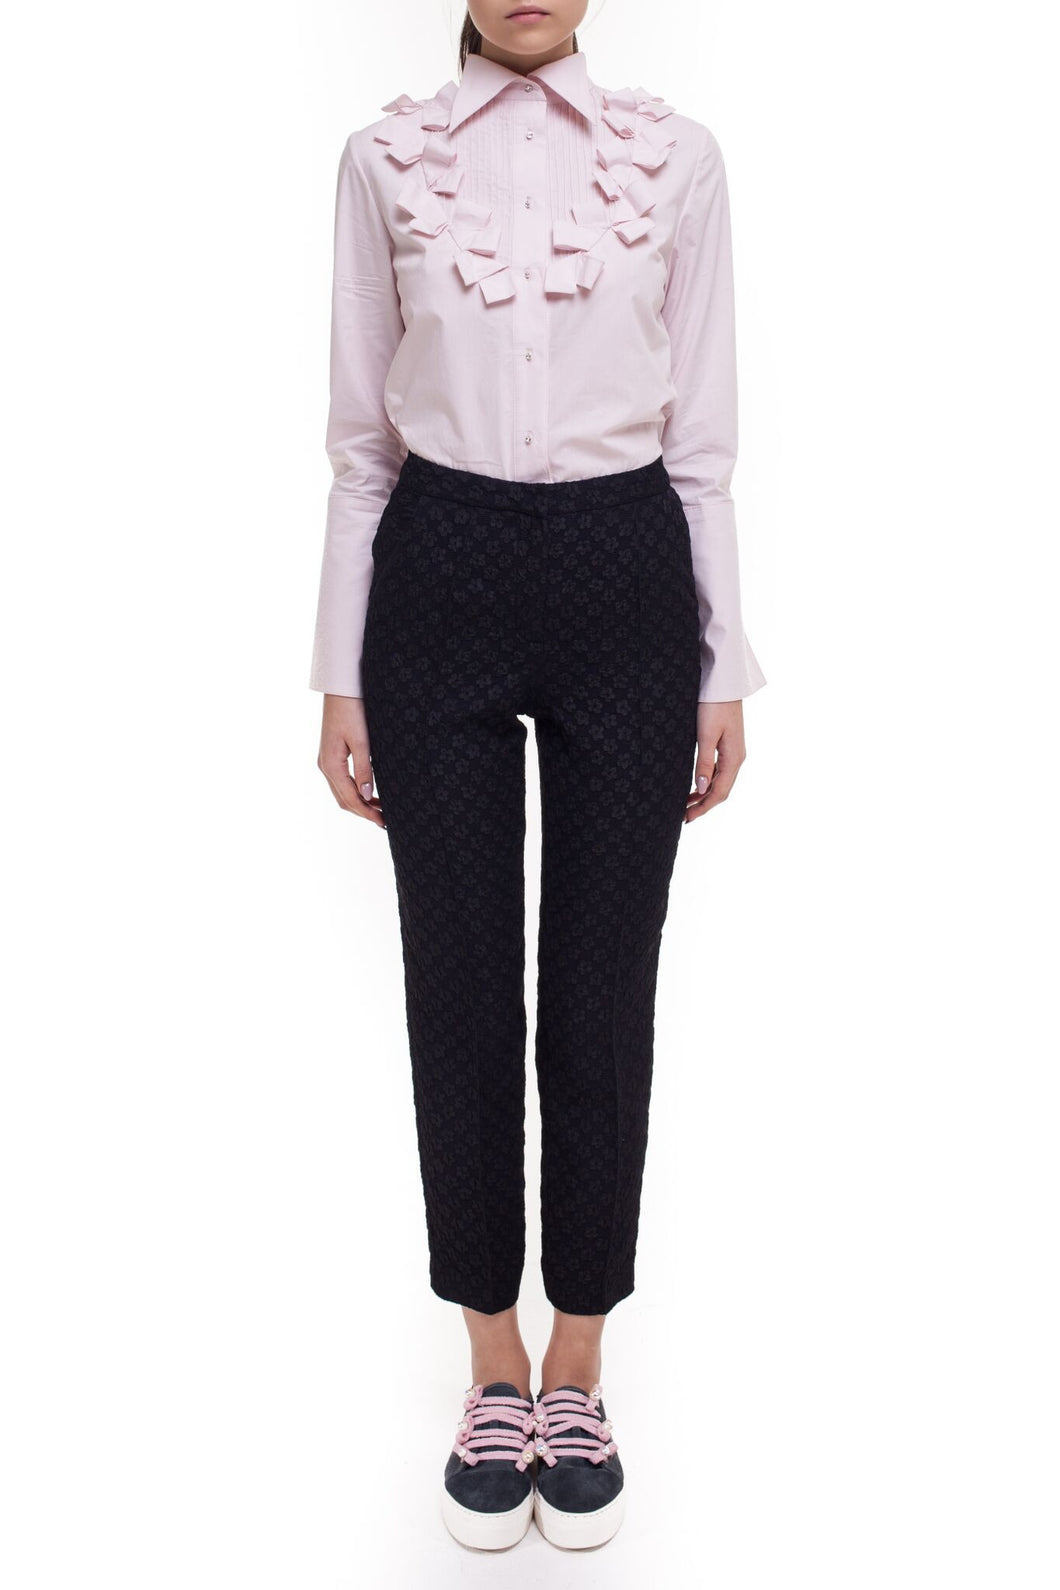 Slim - fit pants - Anna K